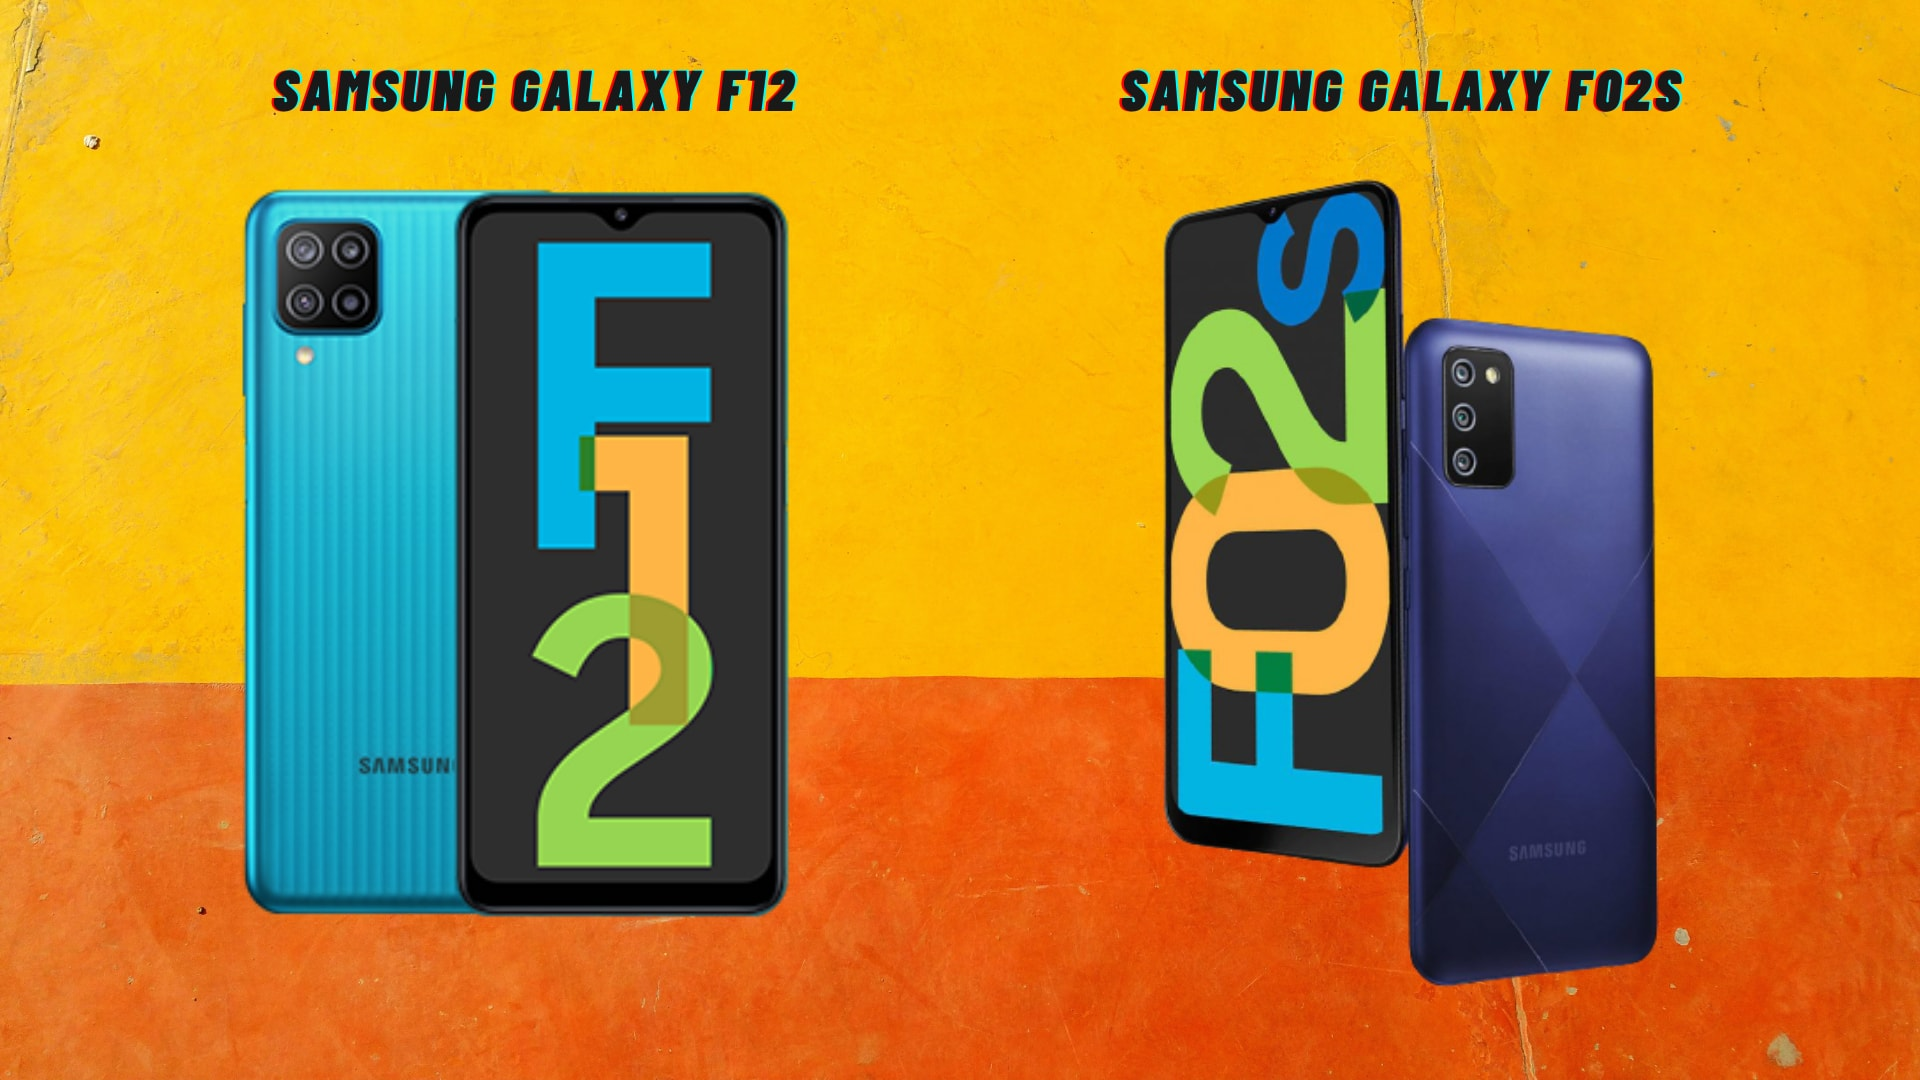 Samsung Galaxy F12 - Availability and Price